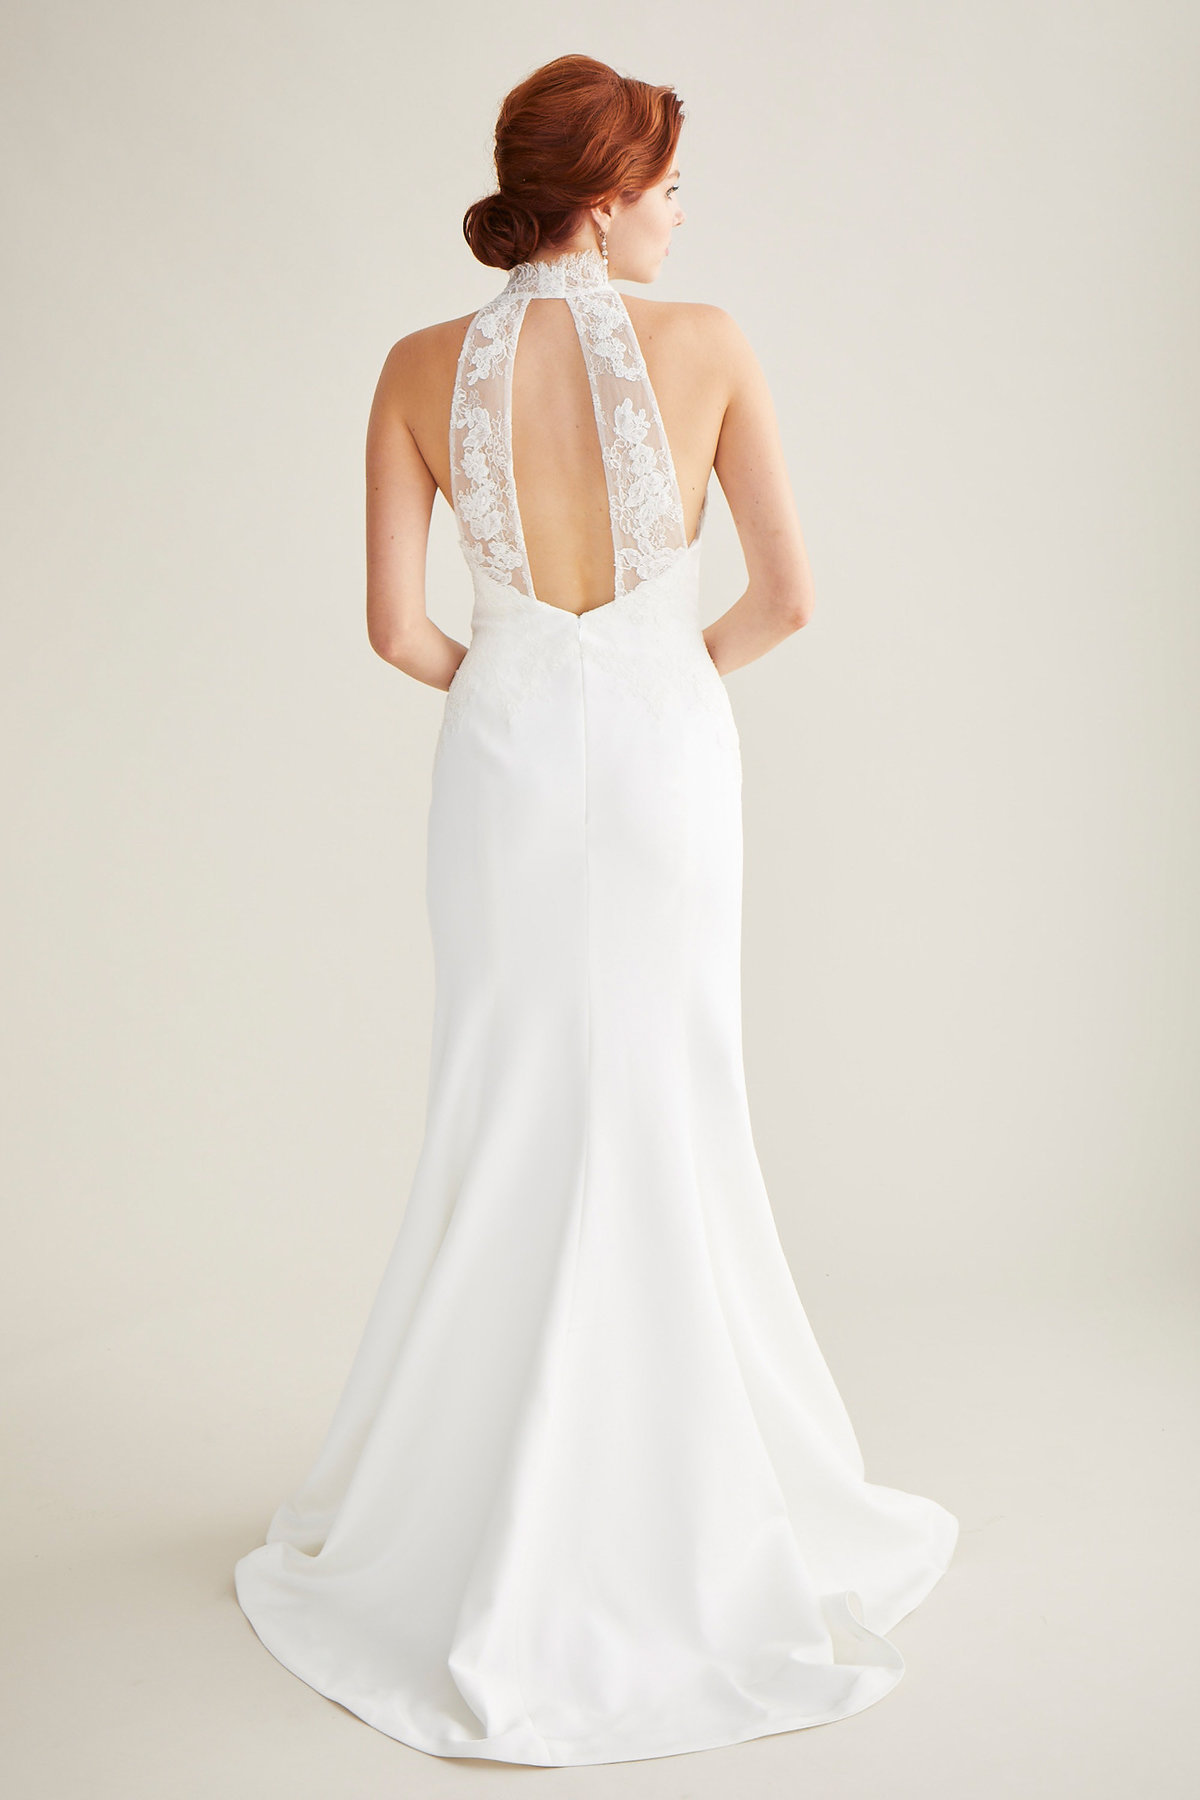 Lea-Ann-Belter-Bridal-Trunk-Show-Jessica-Haley-Bridal-Photo-052